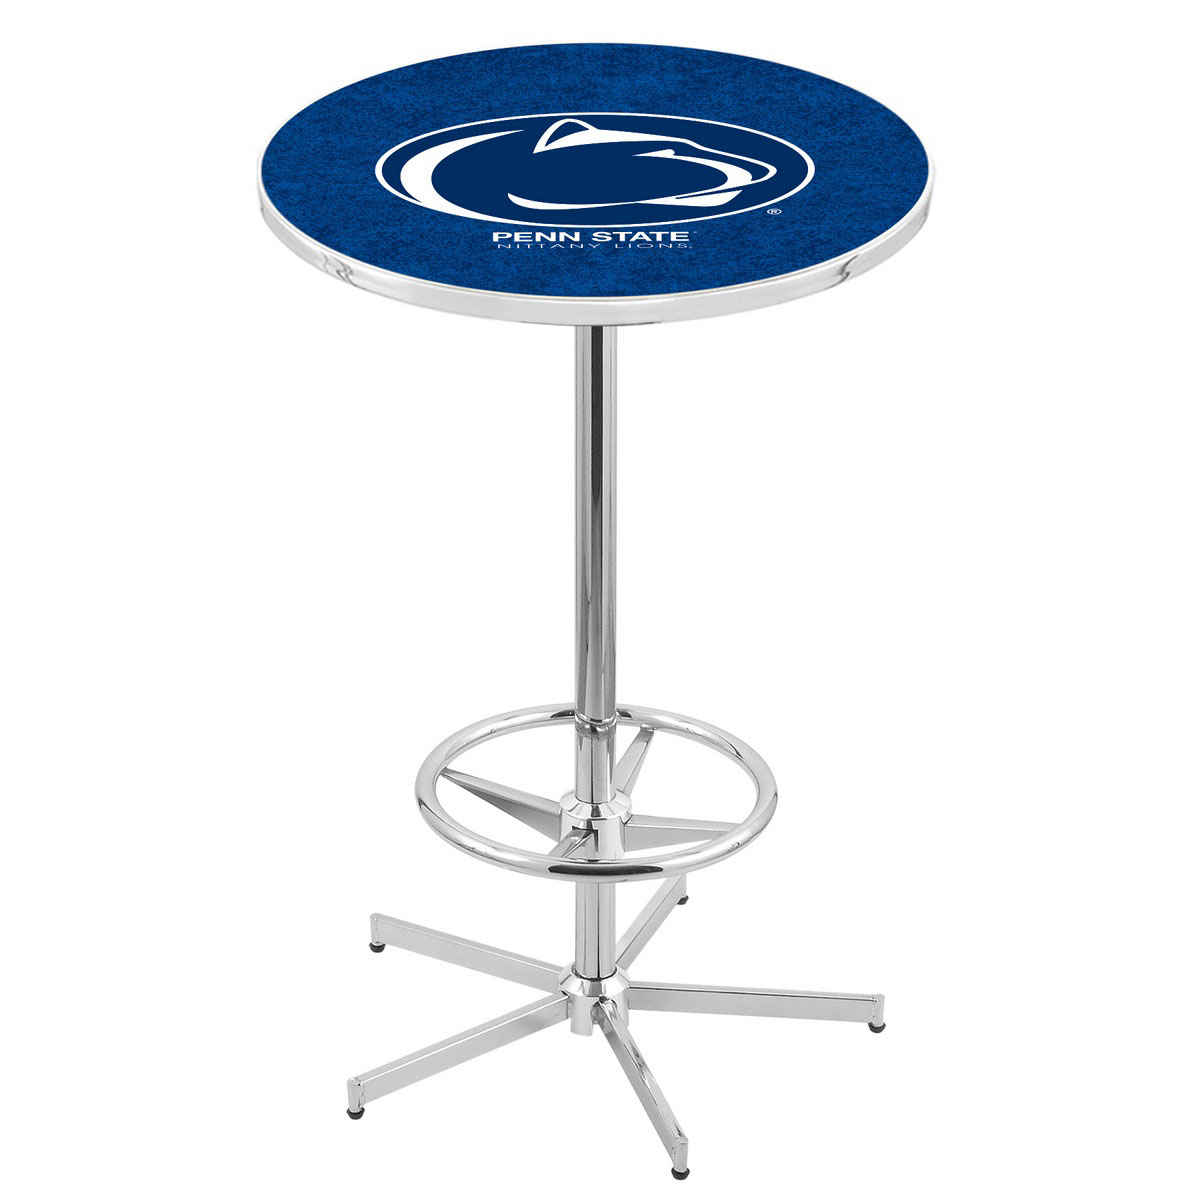 Reliable Chrome Penn State Pub Table Product Photo